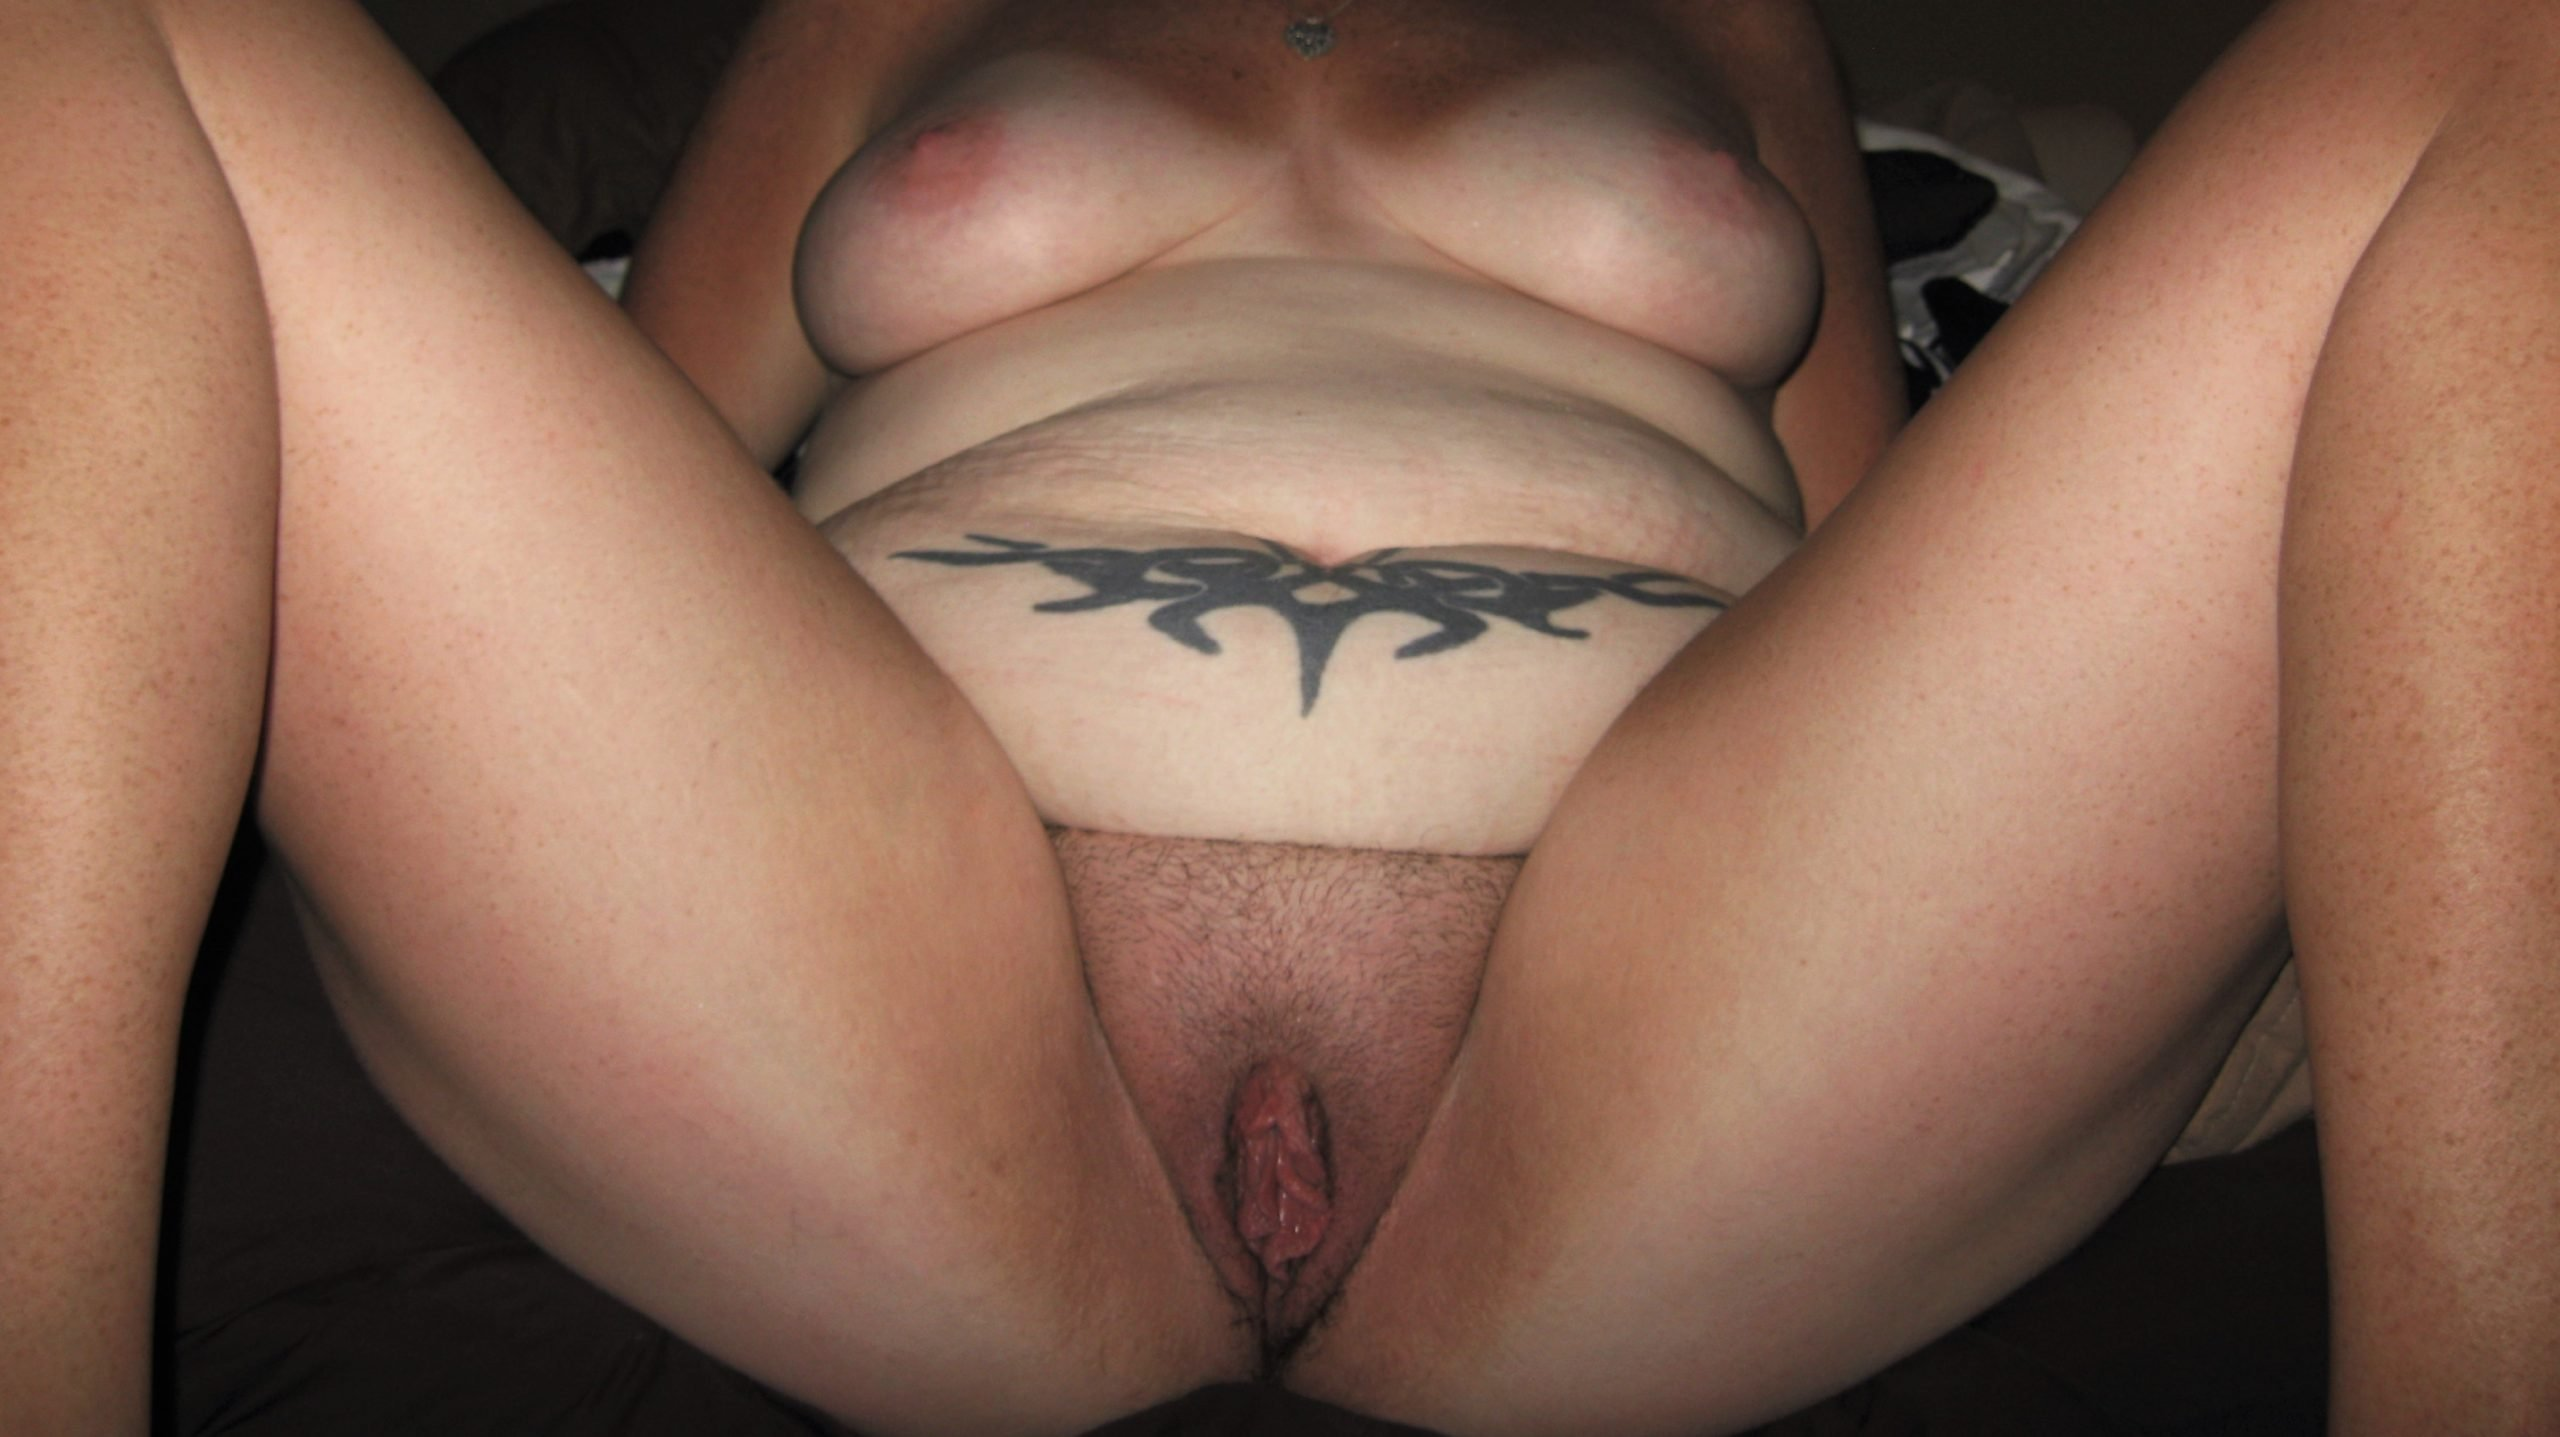 BBW pussy for creampie only